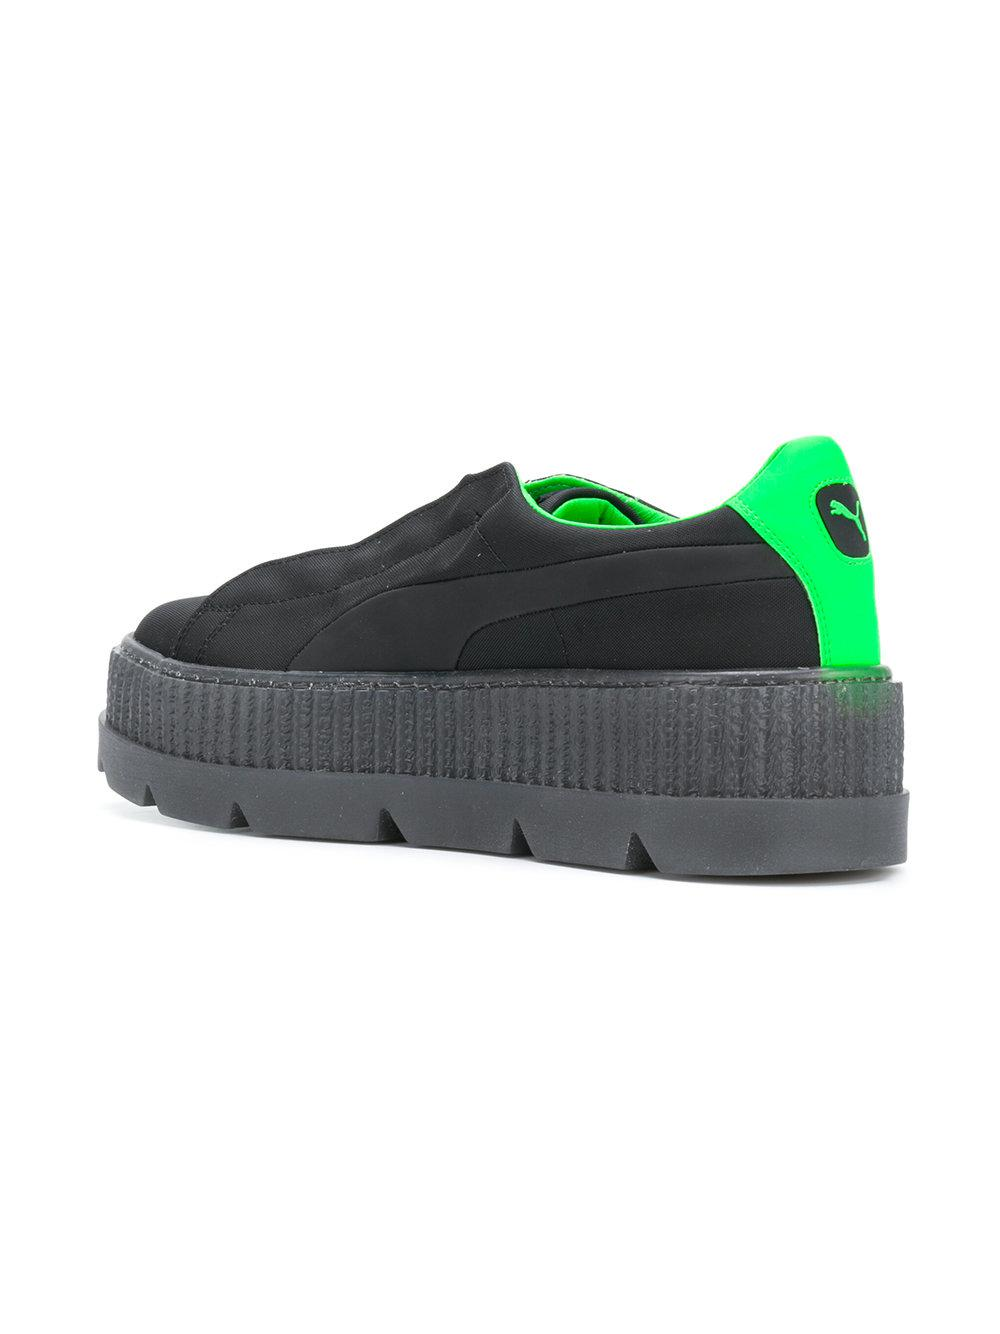 1f72f54f9427 Lyst - Puma Cleated Creeper Sneakers in Black for Men